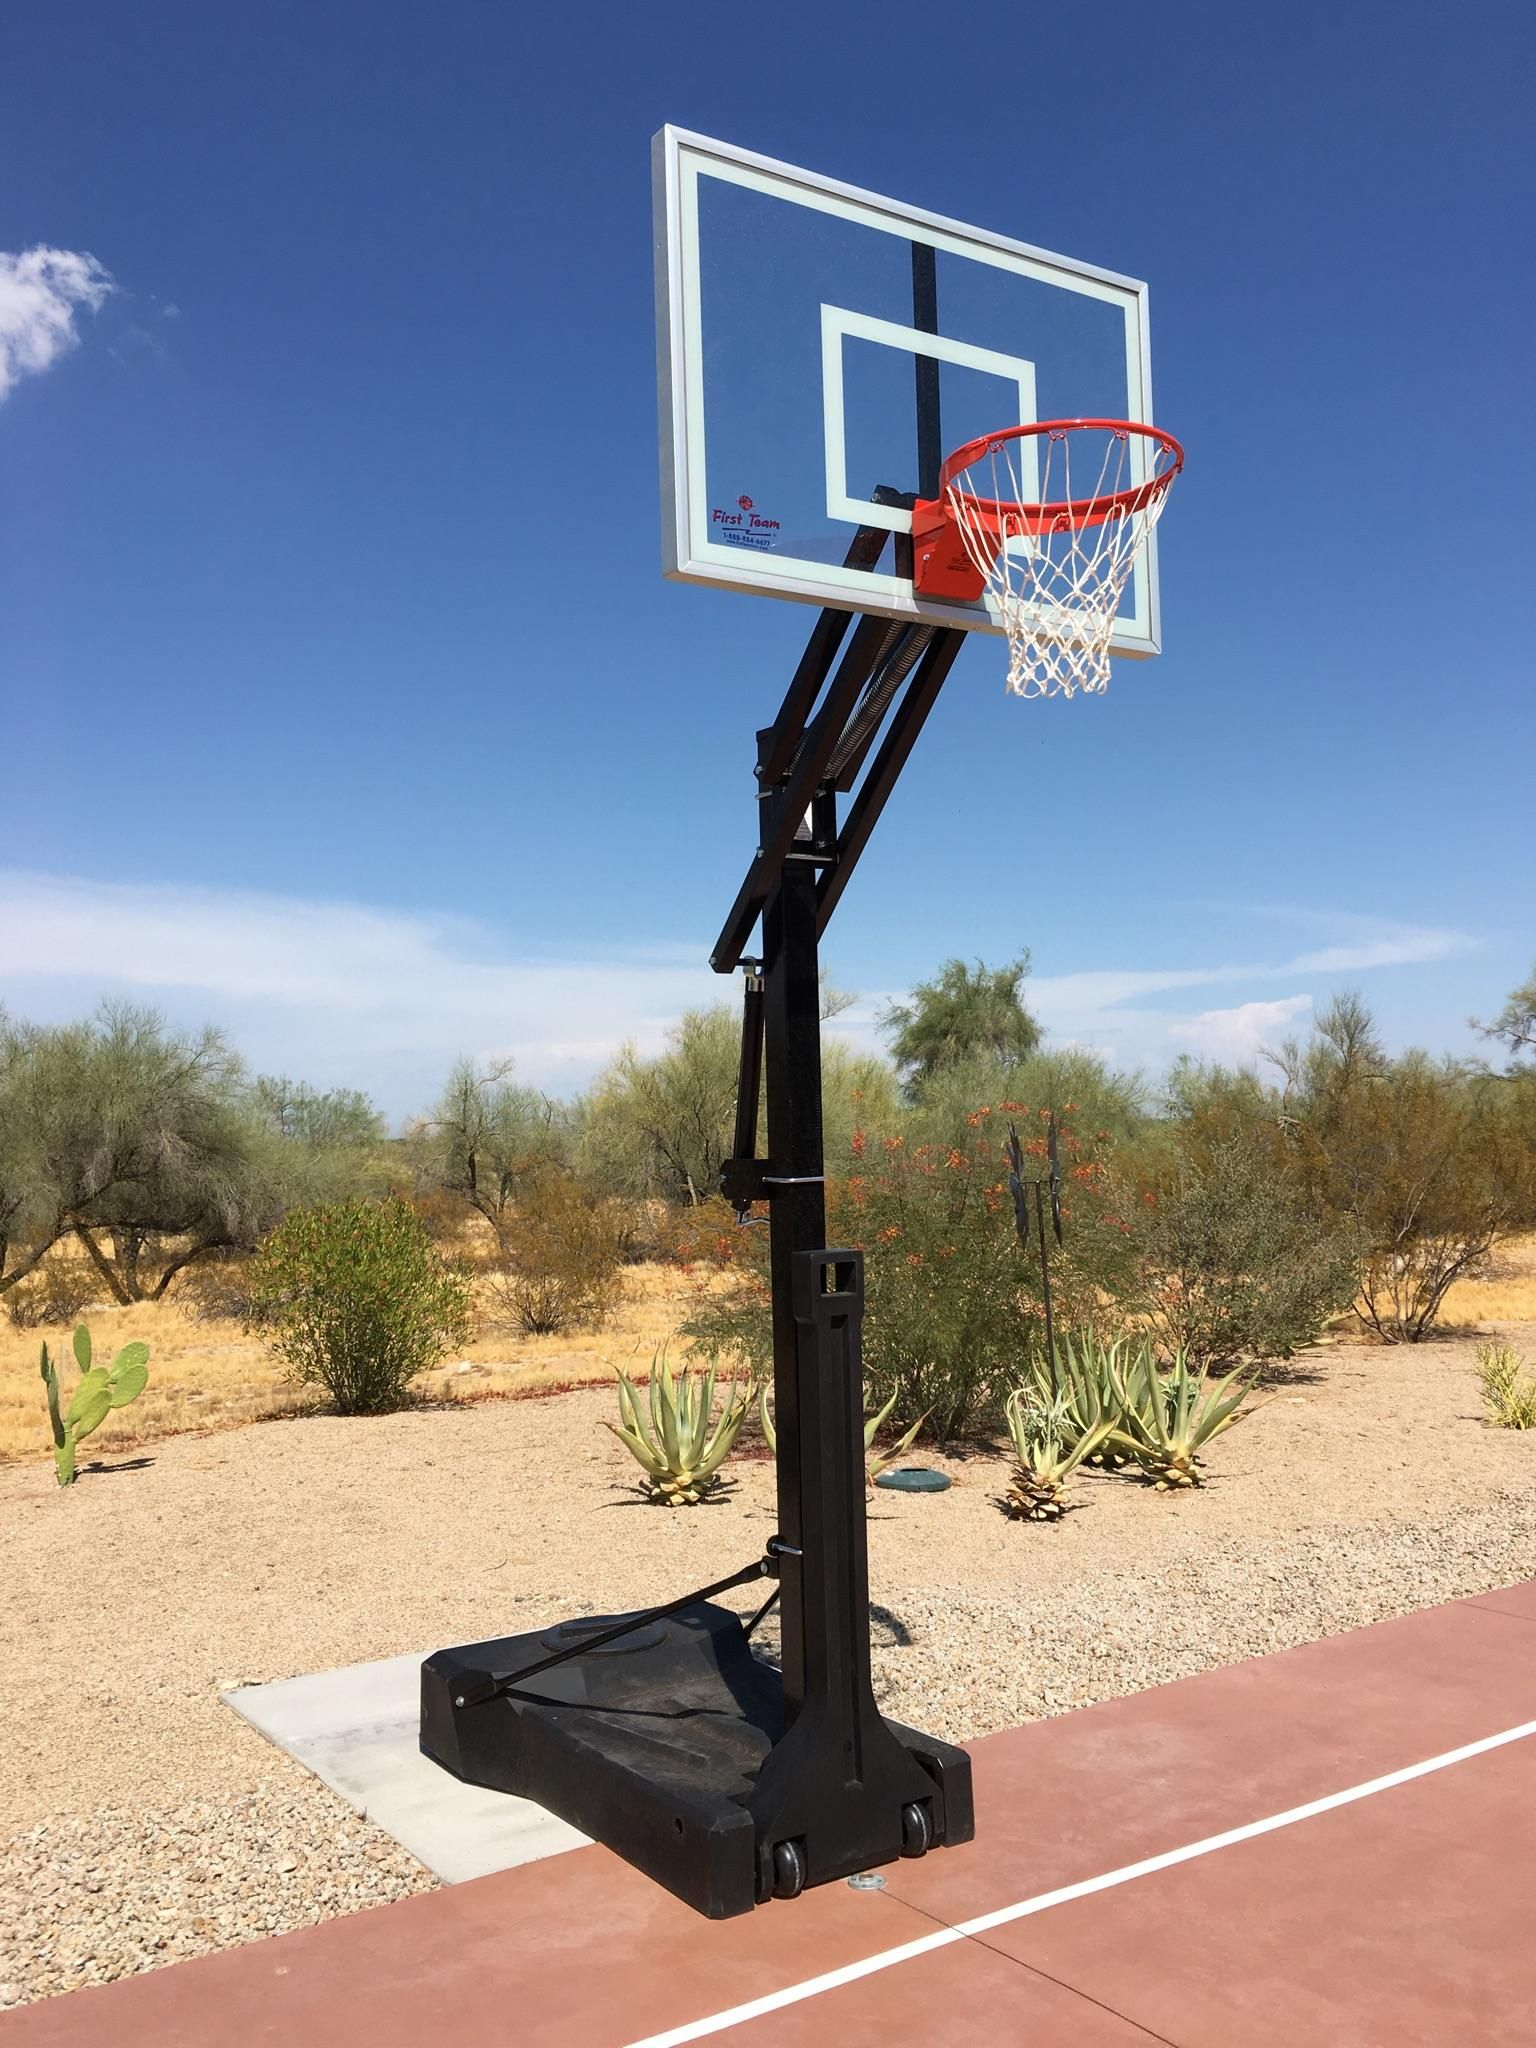 why settle for cheap flimsy portable basketball goals that blow